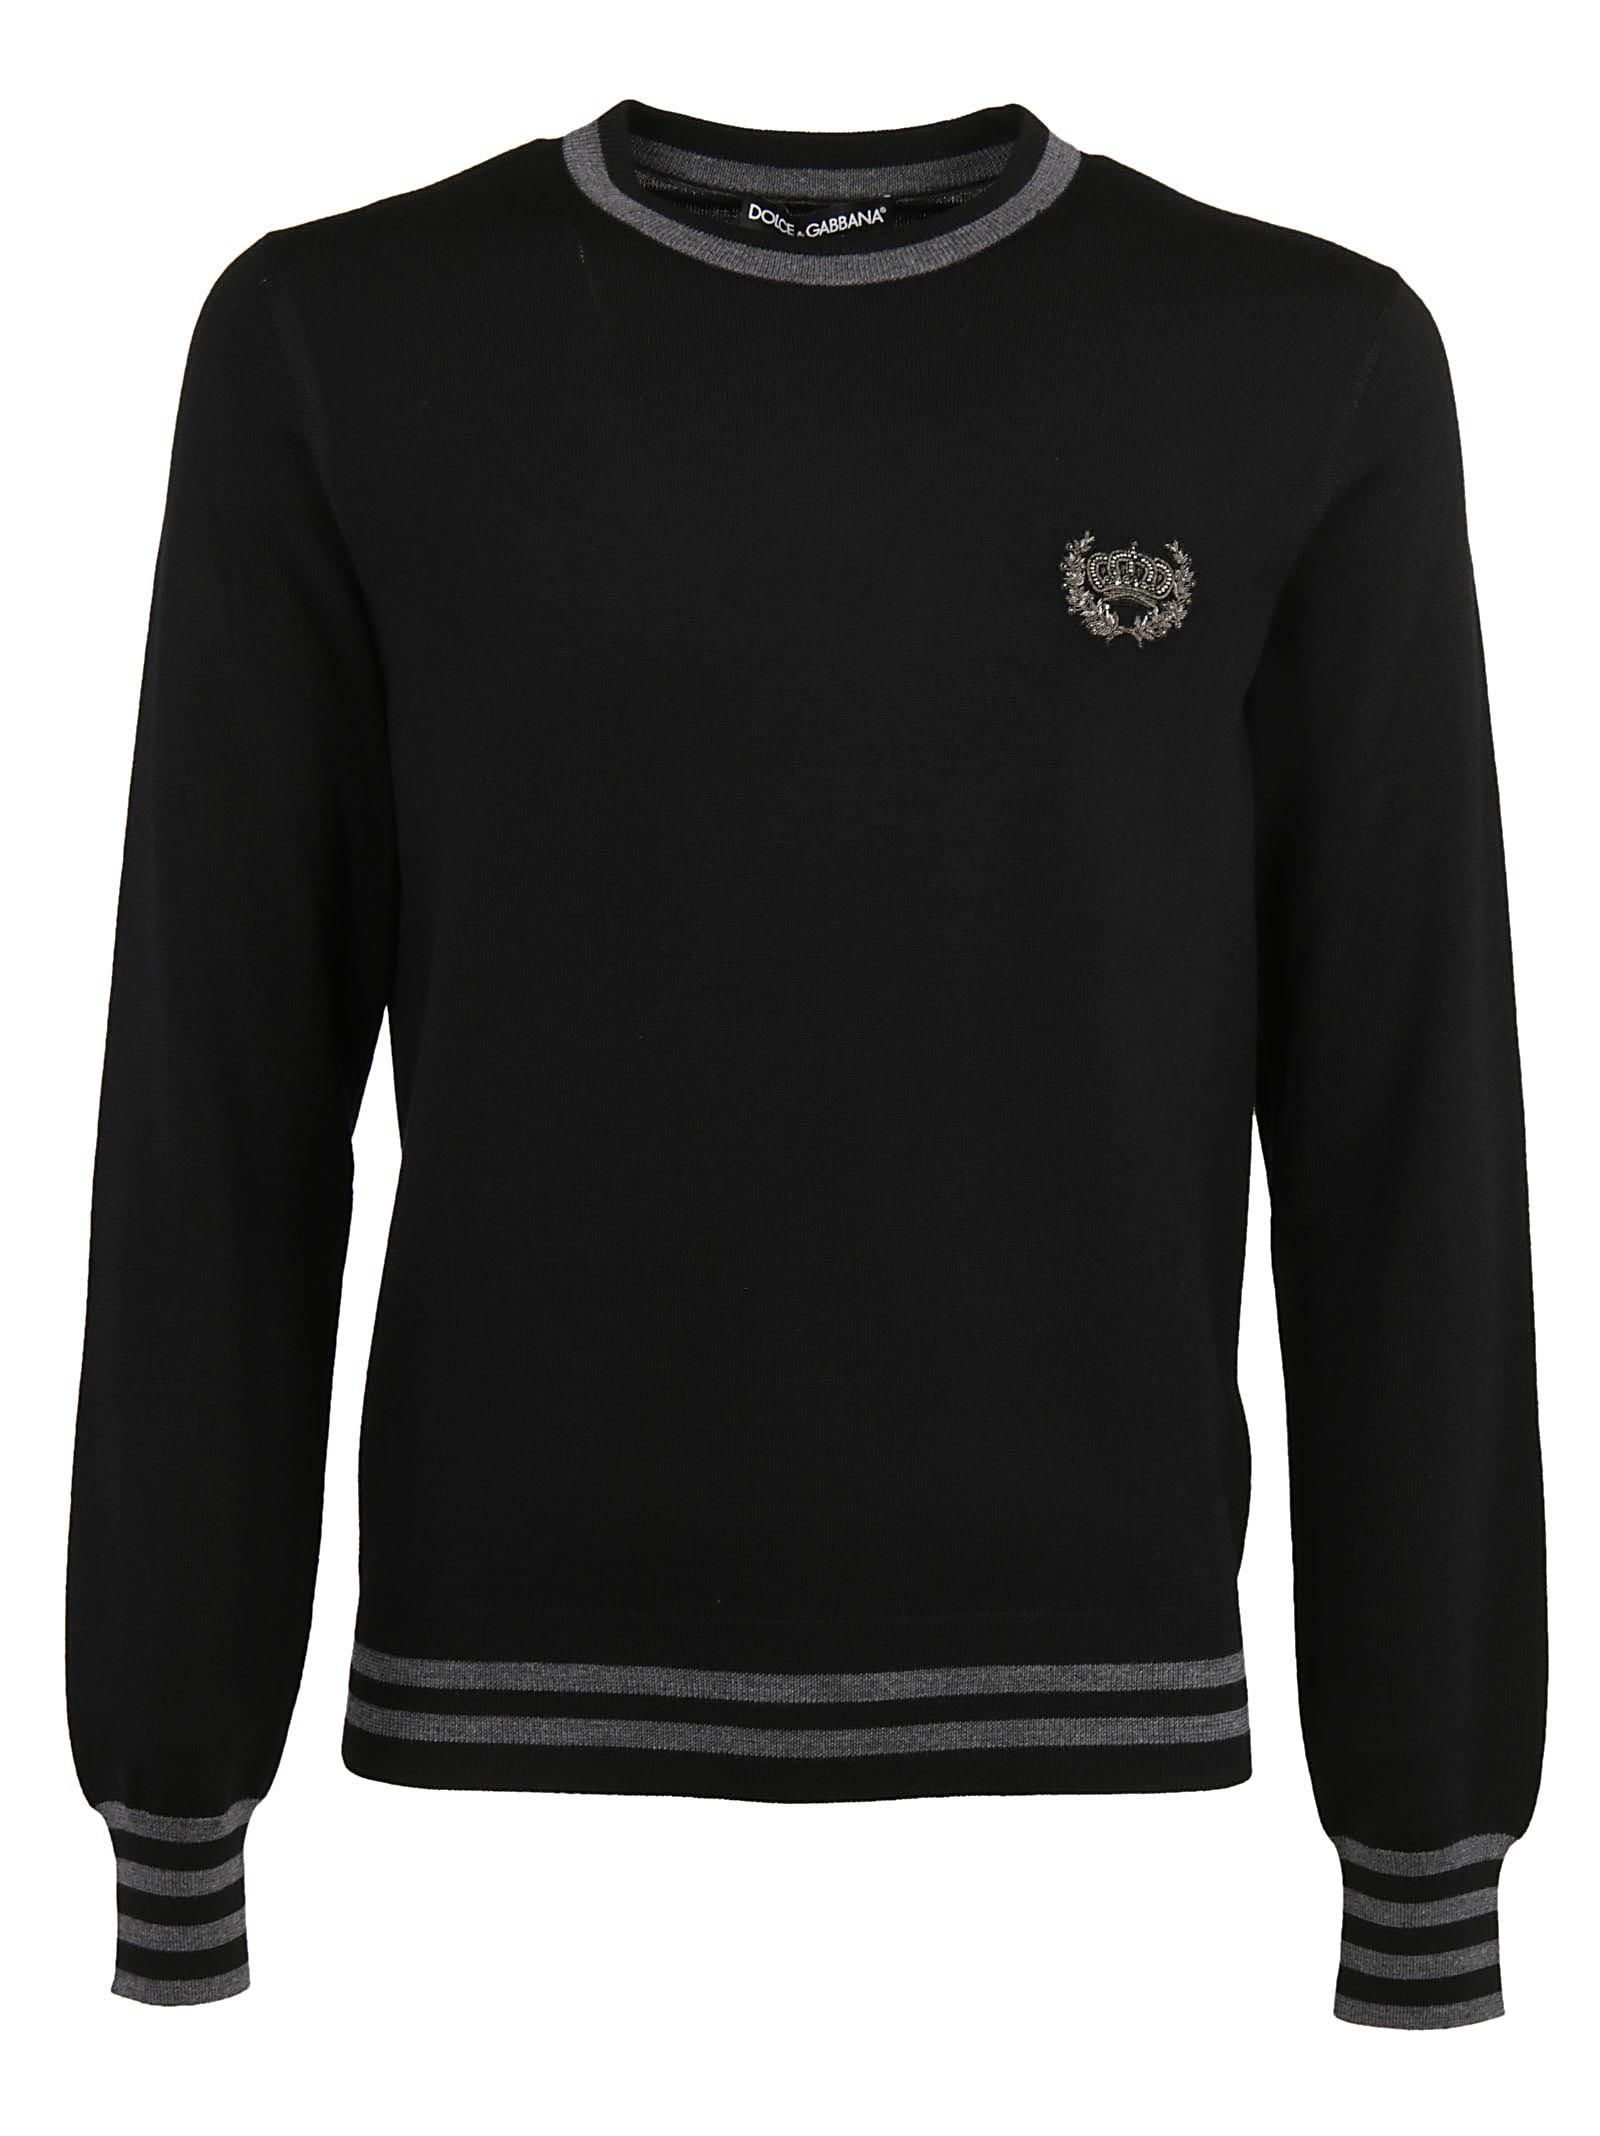 Dolce & Gabbana Embroidered Crown Sweater